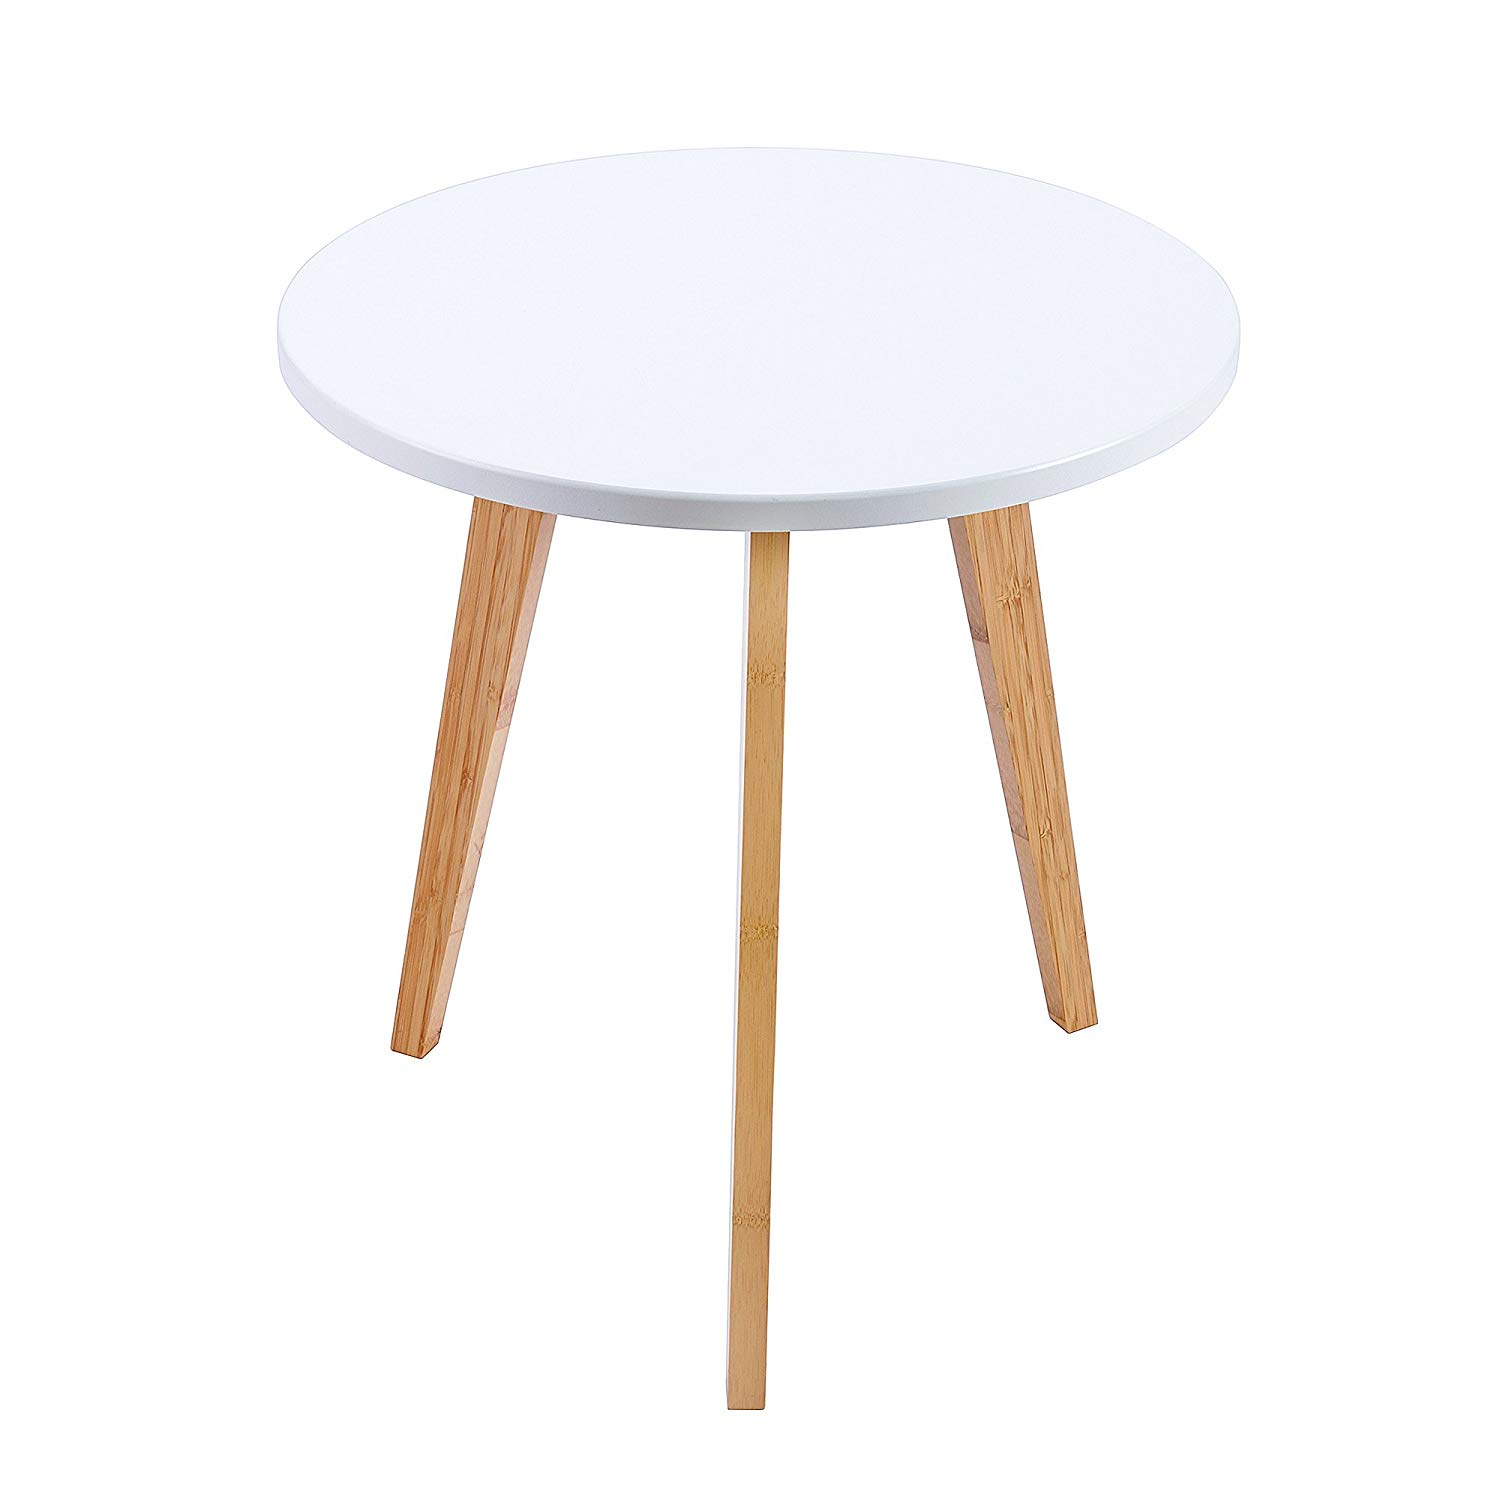 wilshine small round end table for spaces tables living room bedroom with white top and natural bamboo legs kitchen dining modern furniture detroit home office depot rustic whalen